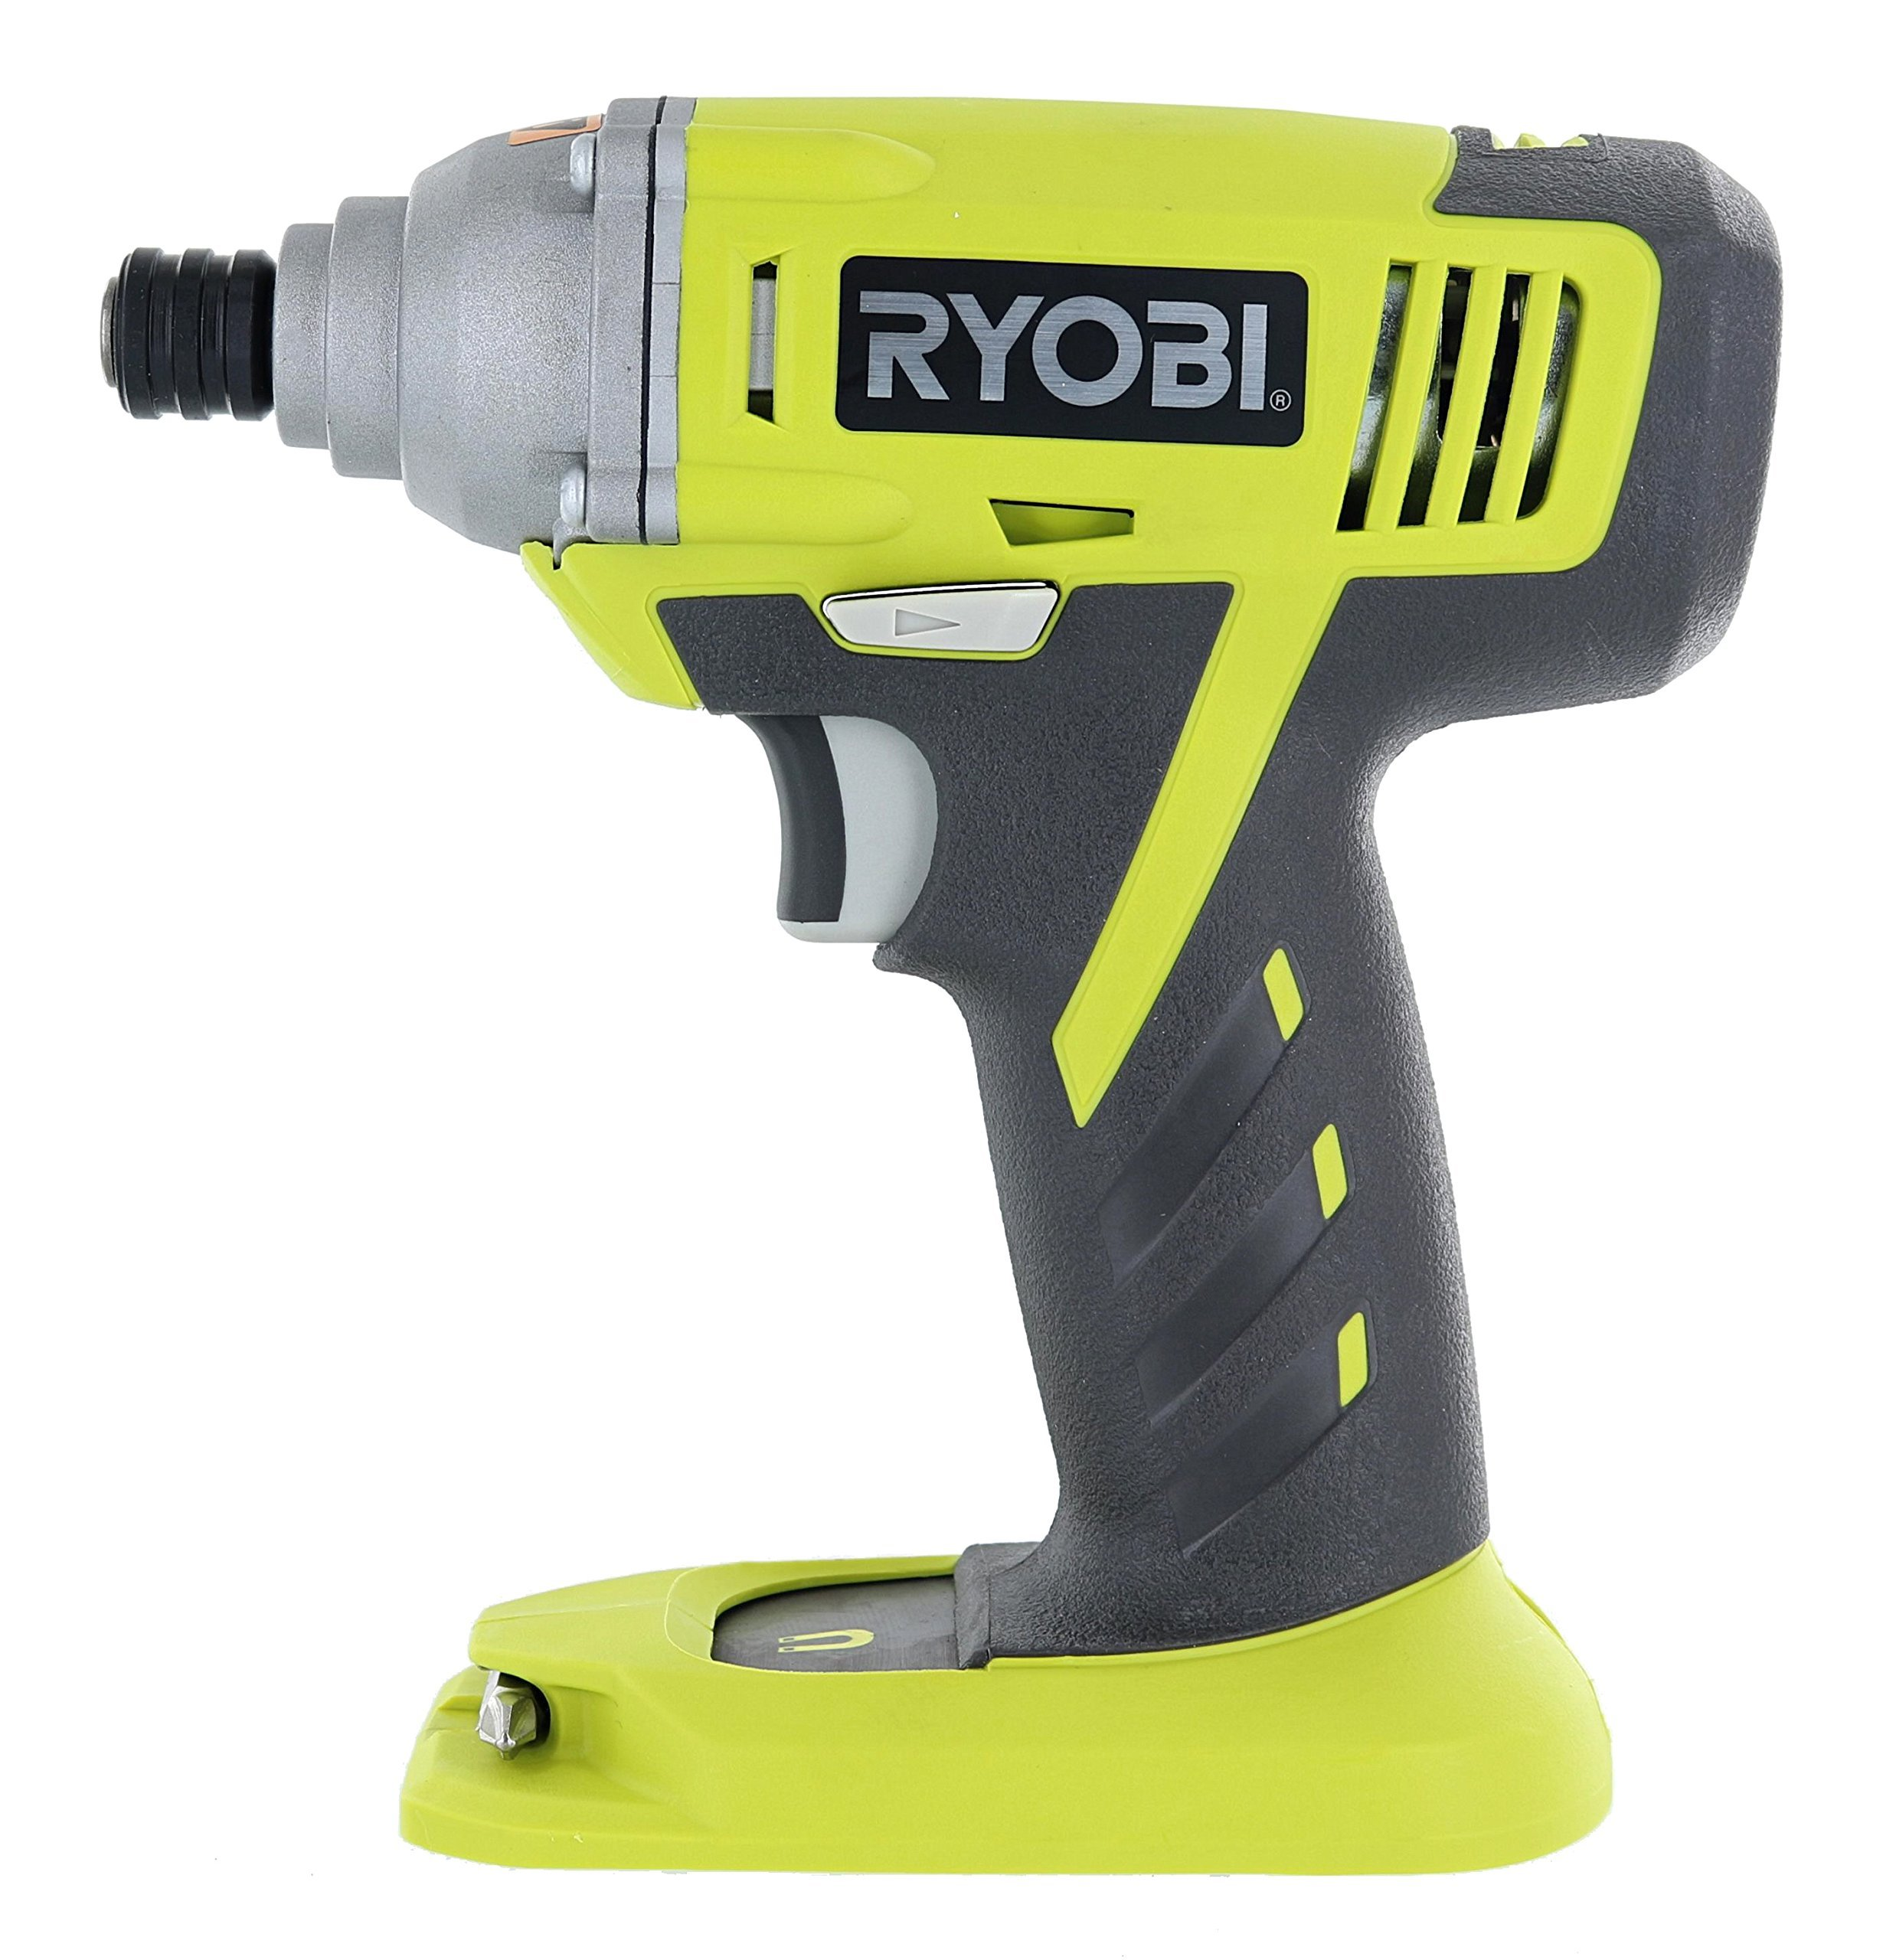 Ryobi P234g One+ 18-Volt Lithium Ion Cordless Impact Driver (Battery Not Included / Power Tool Only) (Certified Refurbished) by Ryobi (Image #2)